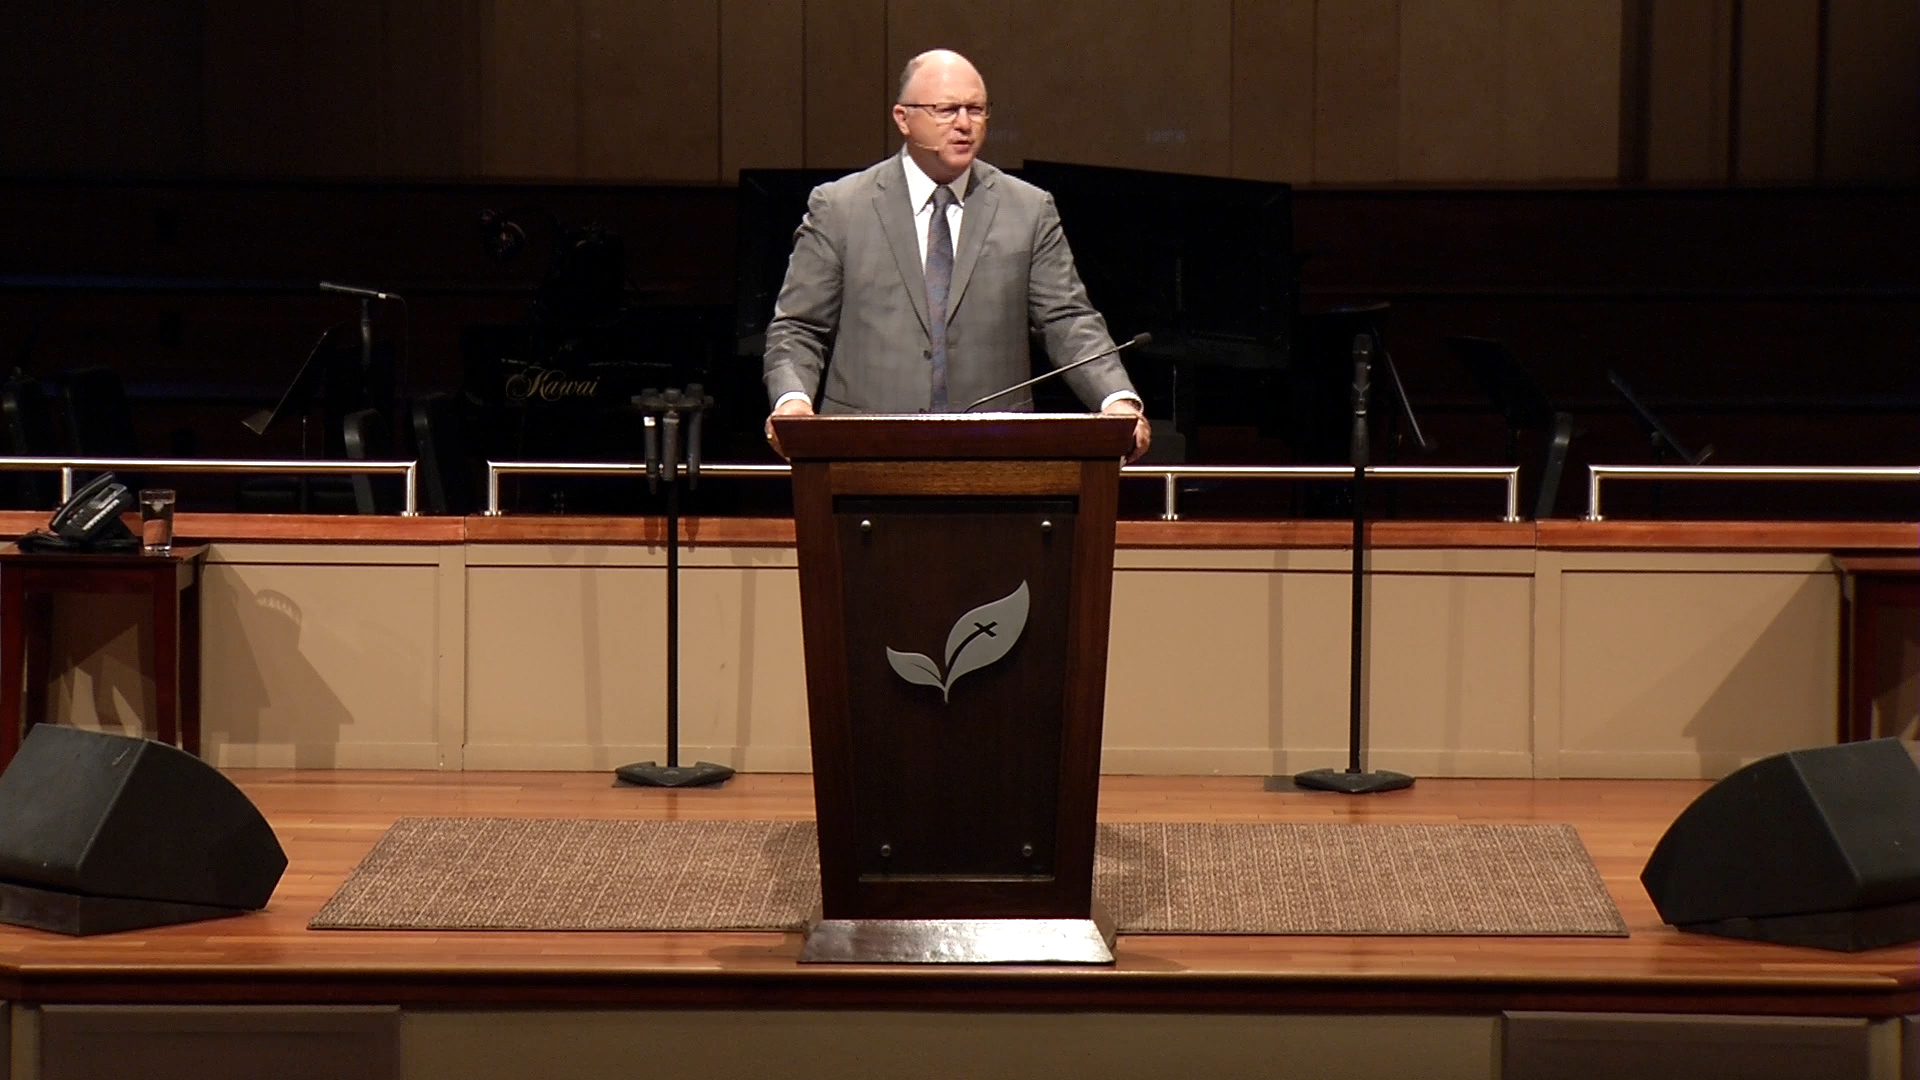 Pastor Paul Chappell: A Man of God in this City